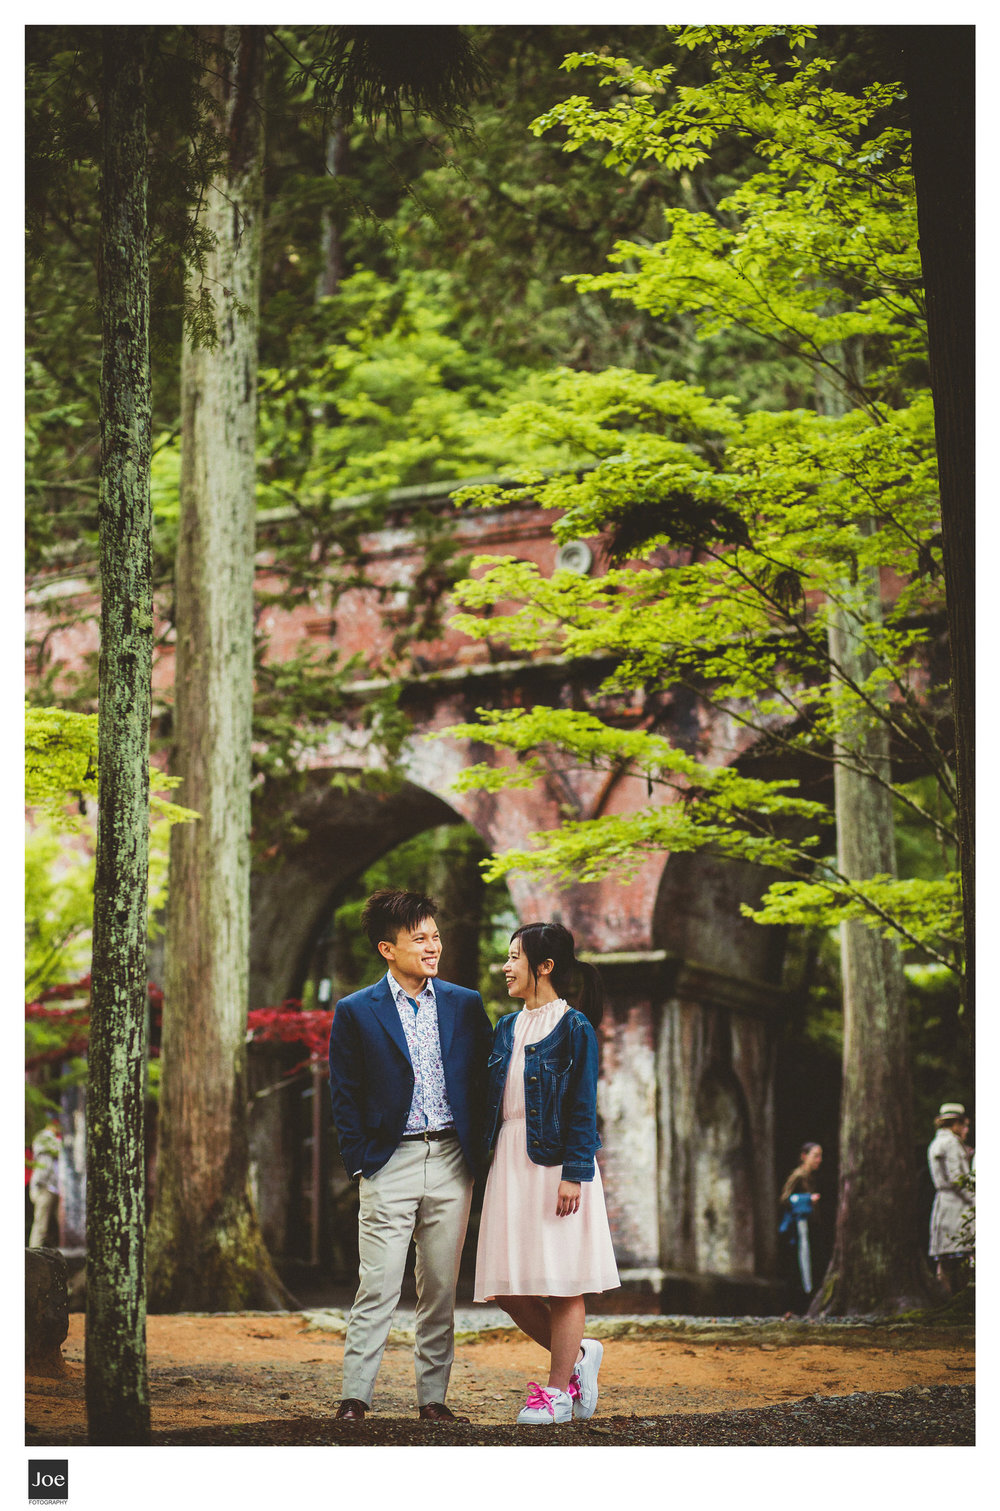 26-nanzenji-temple-kyoto-pre-wedding-angela-danny-joe-fotography.jpg